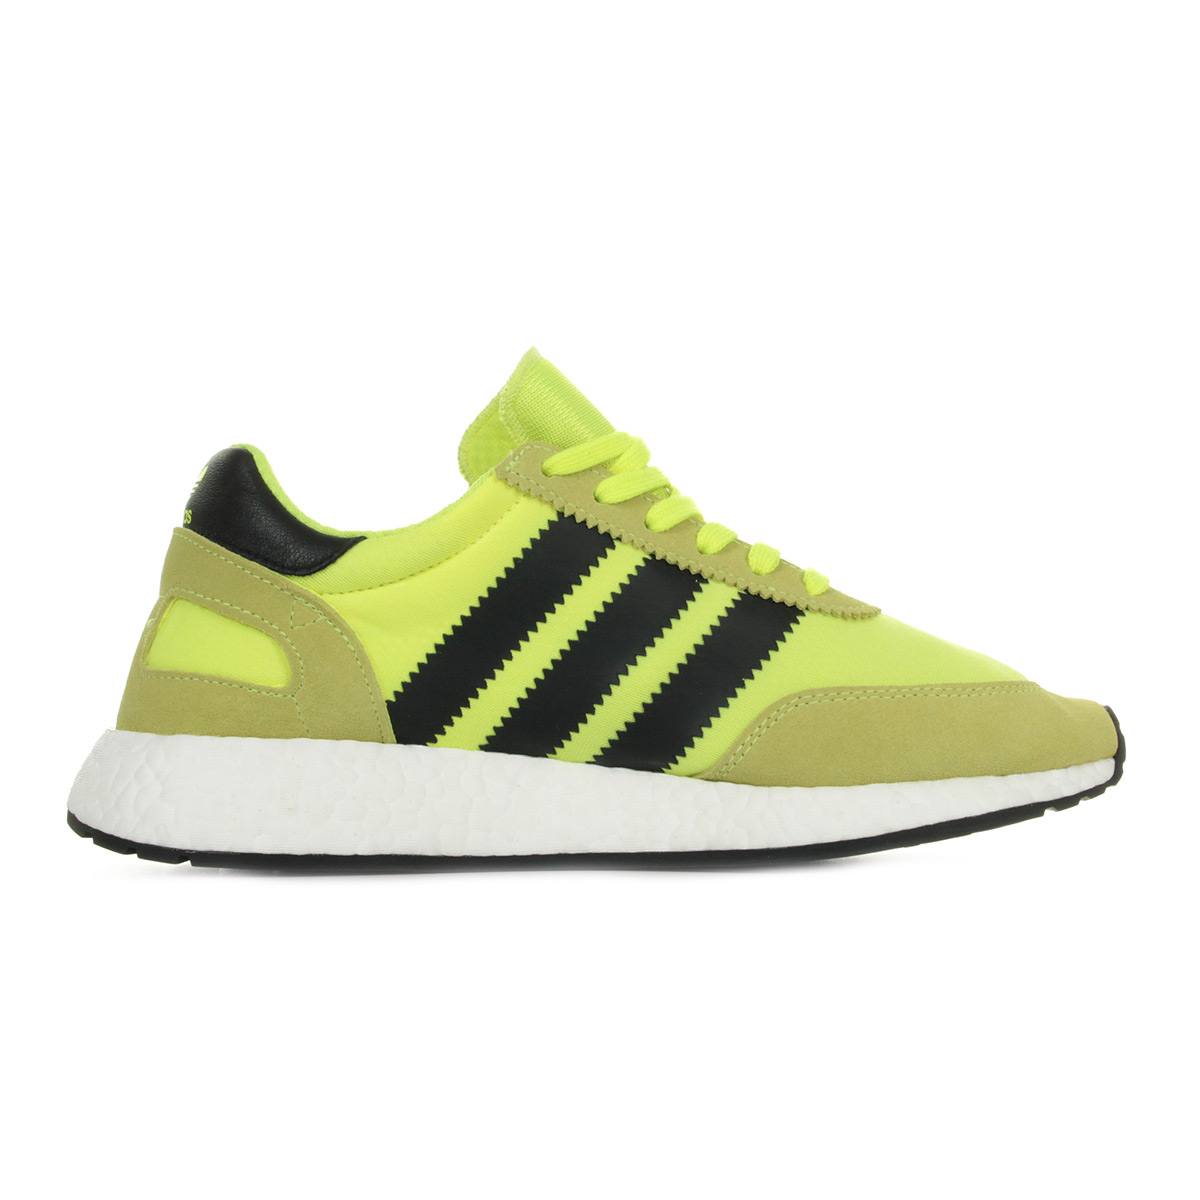 Amazone Footaction Vente Pas Cher Trouver Une Grande Adidas Iniki Runner BB2094 Baskets Mode Homme Sast A Vendre F6LY7D